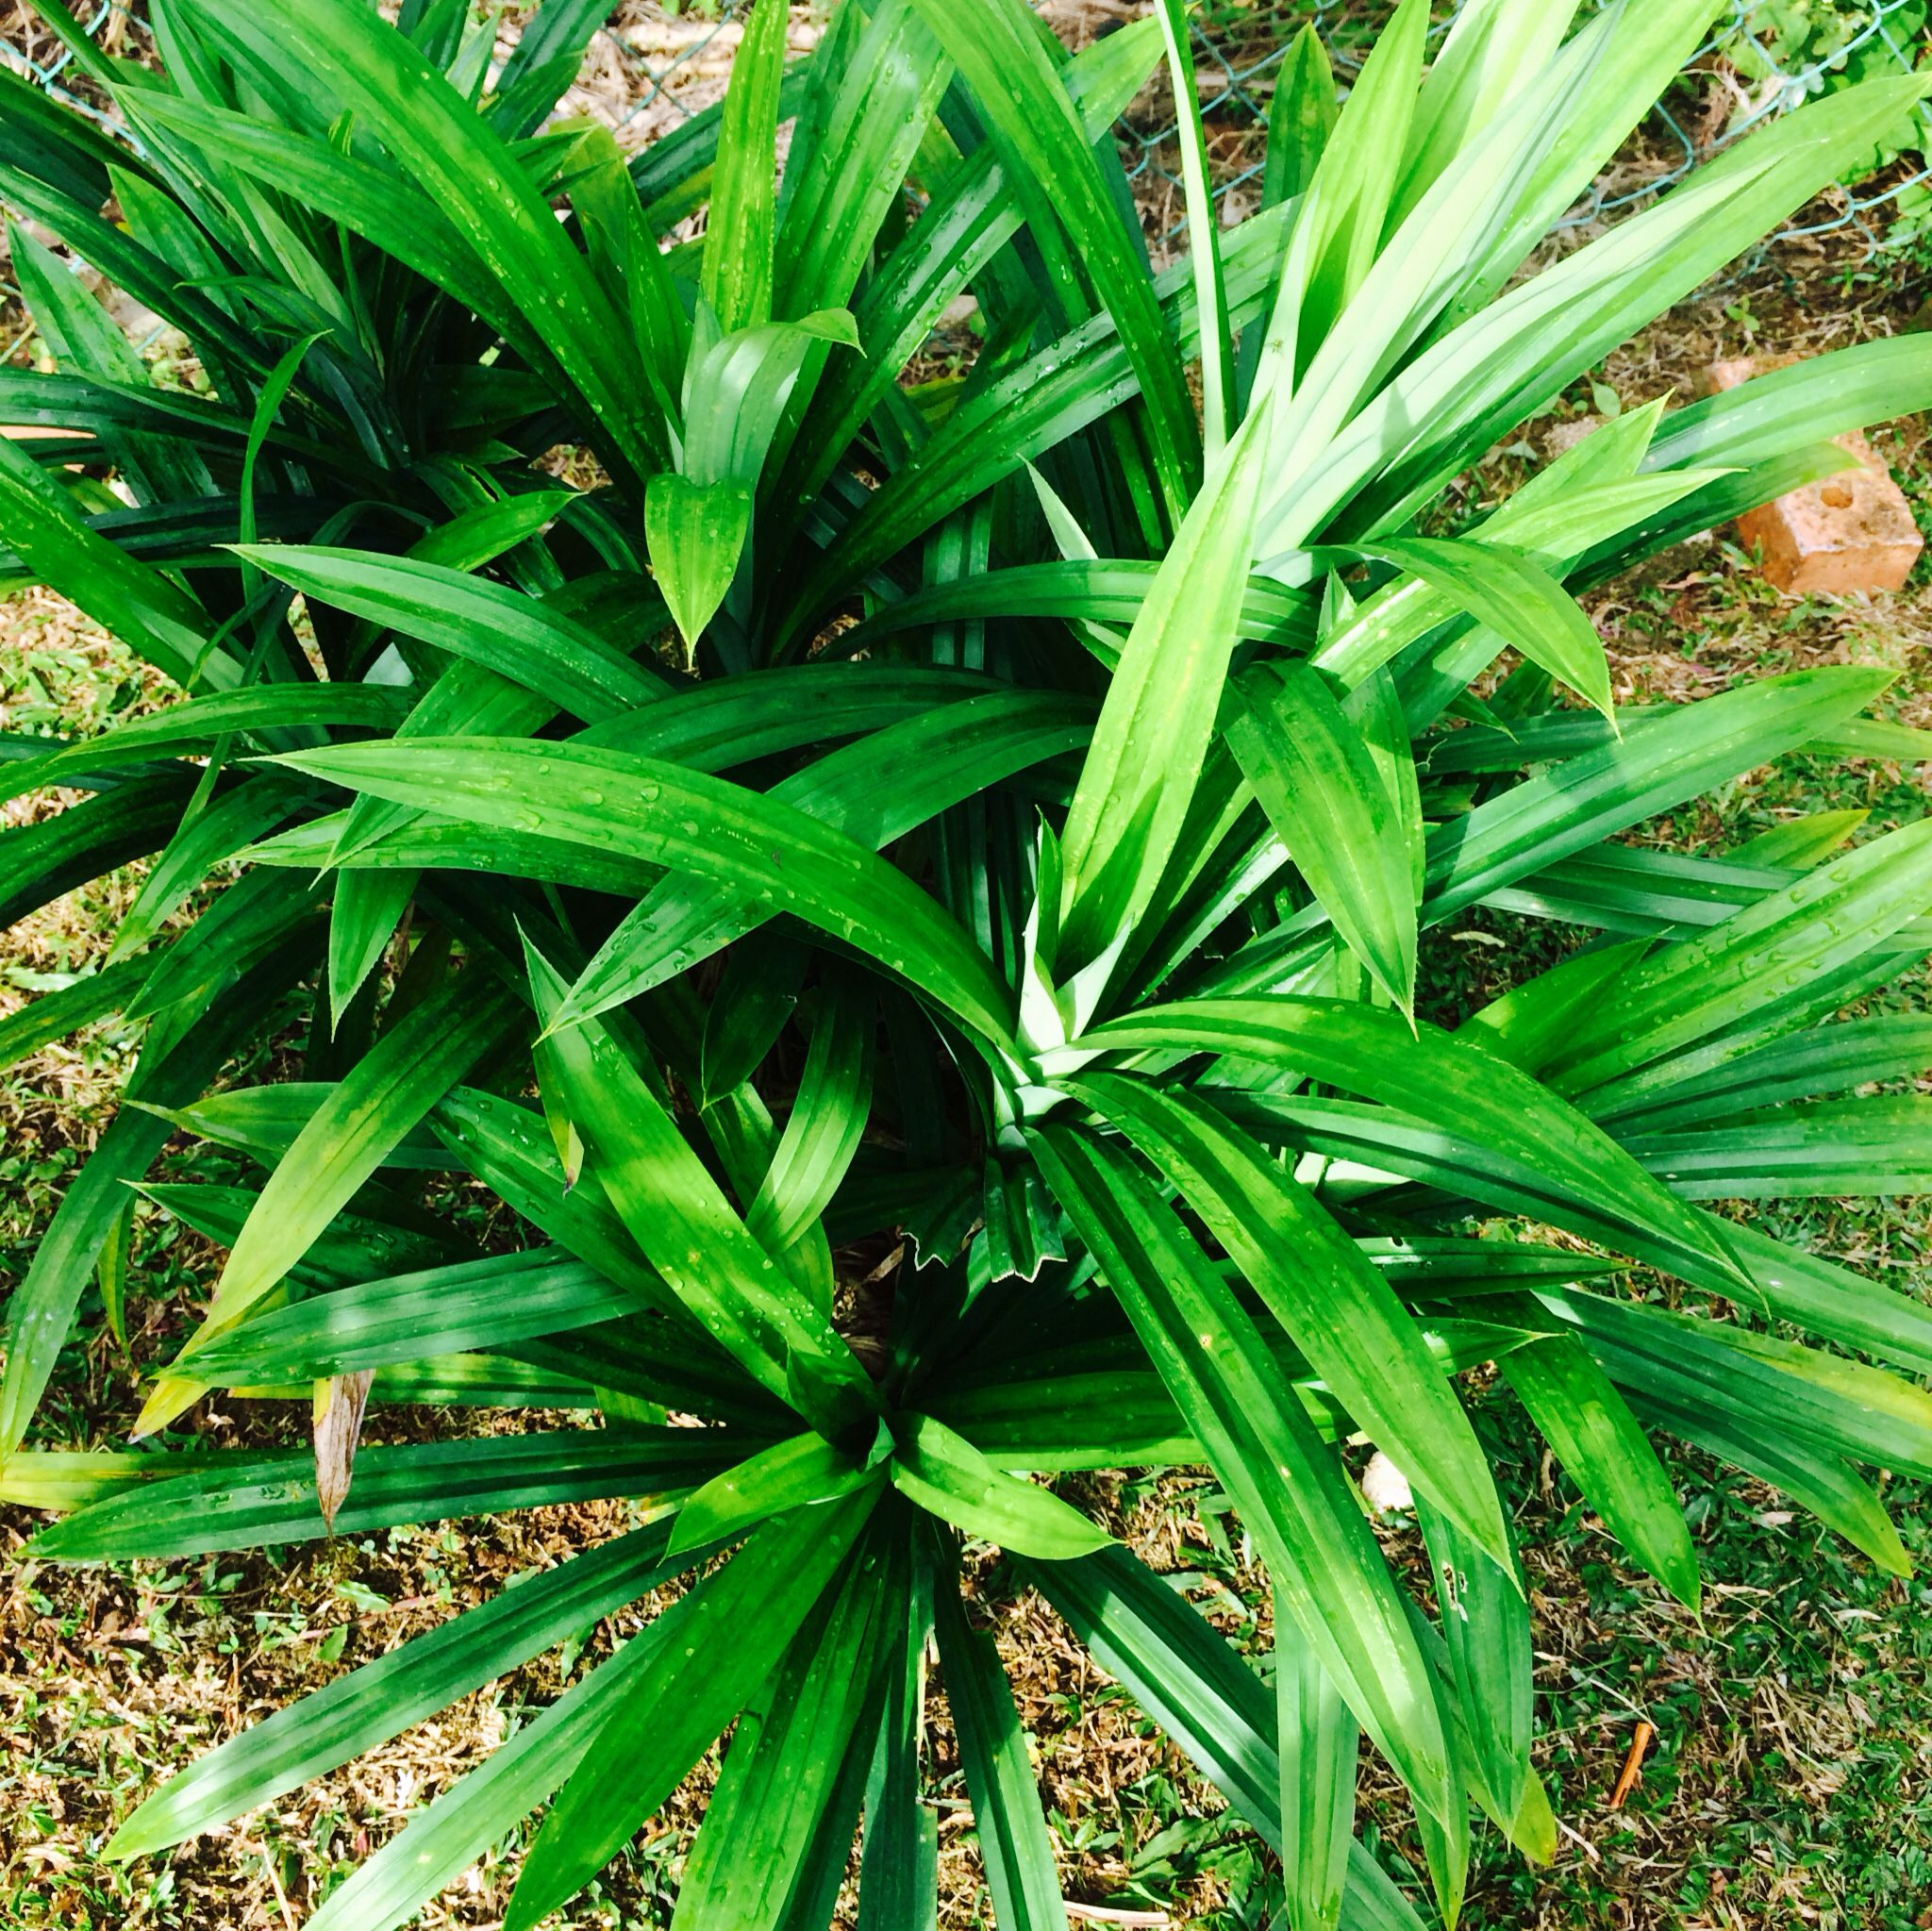 The Pandan Plant Leaves Are Used By Locals As Flavor On Food